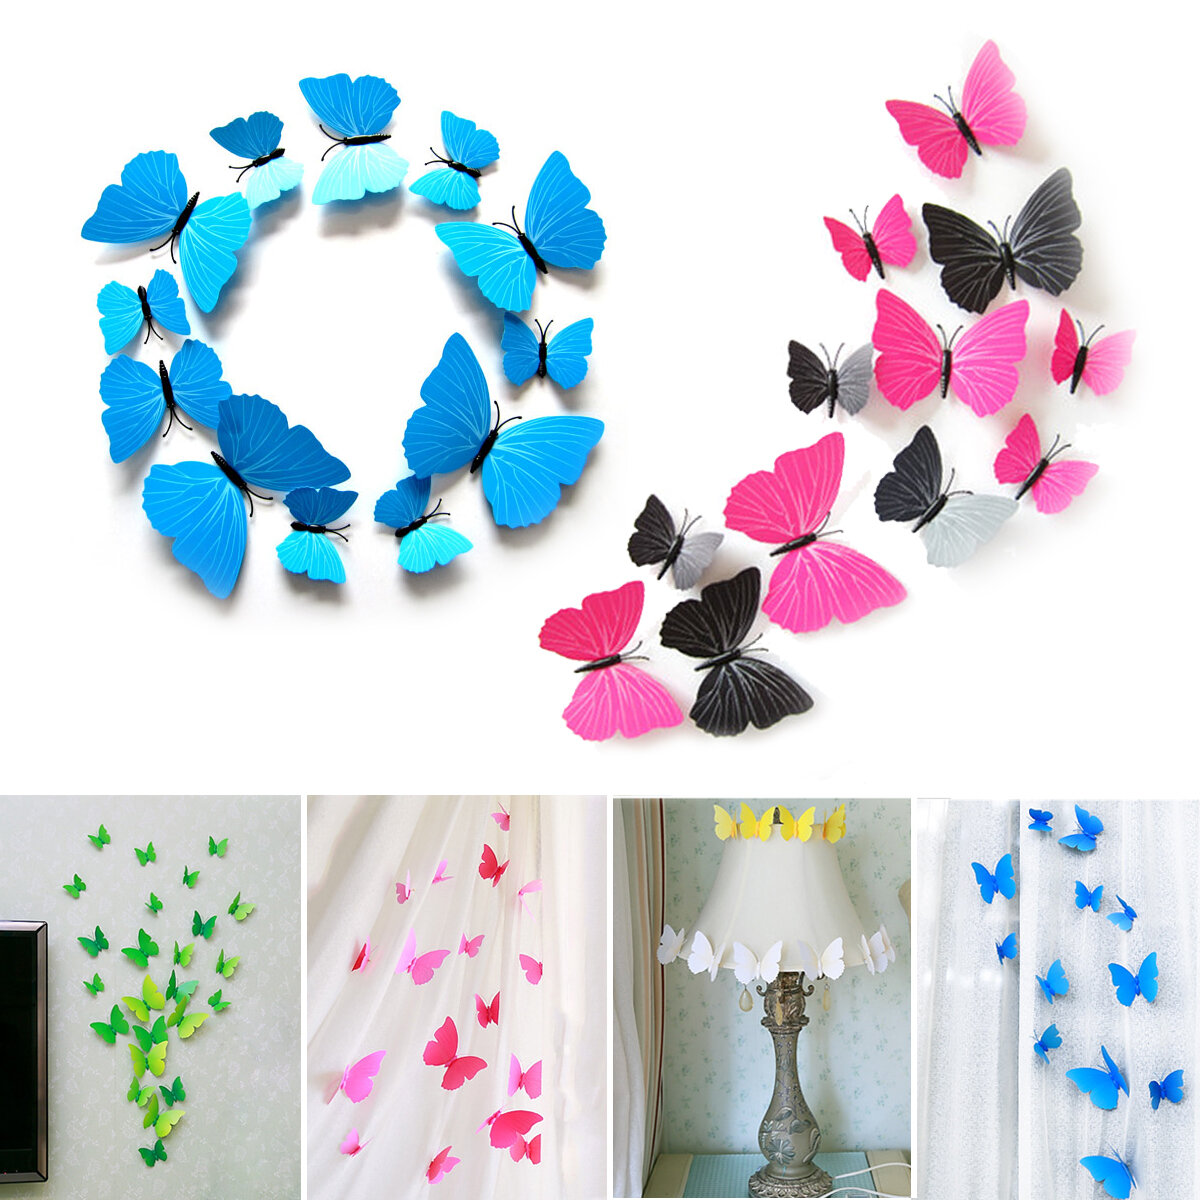 12PCS 3D Butterfly Art Design Stickers Decals Wall Home Decor Room Wedding Party Decorations